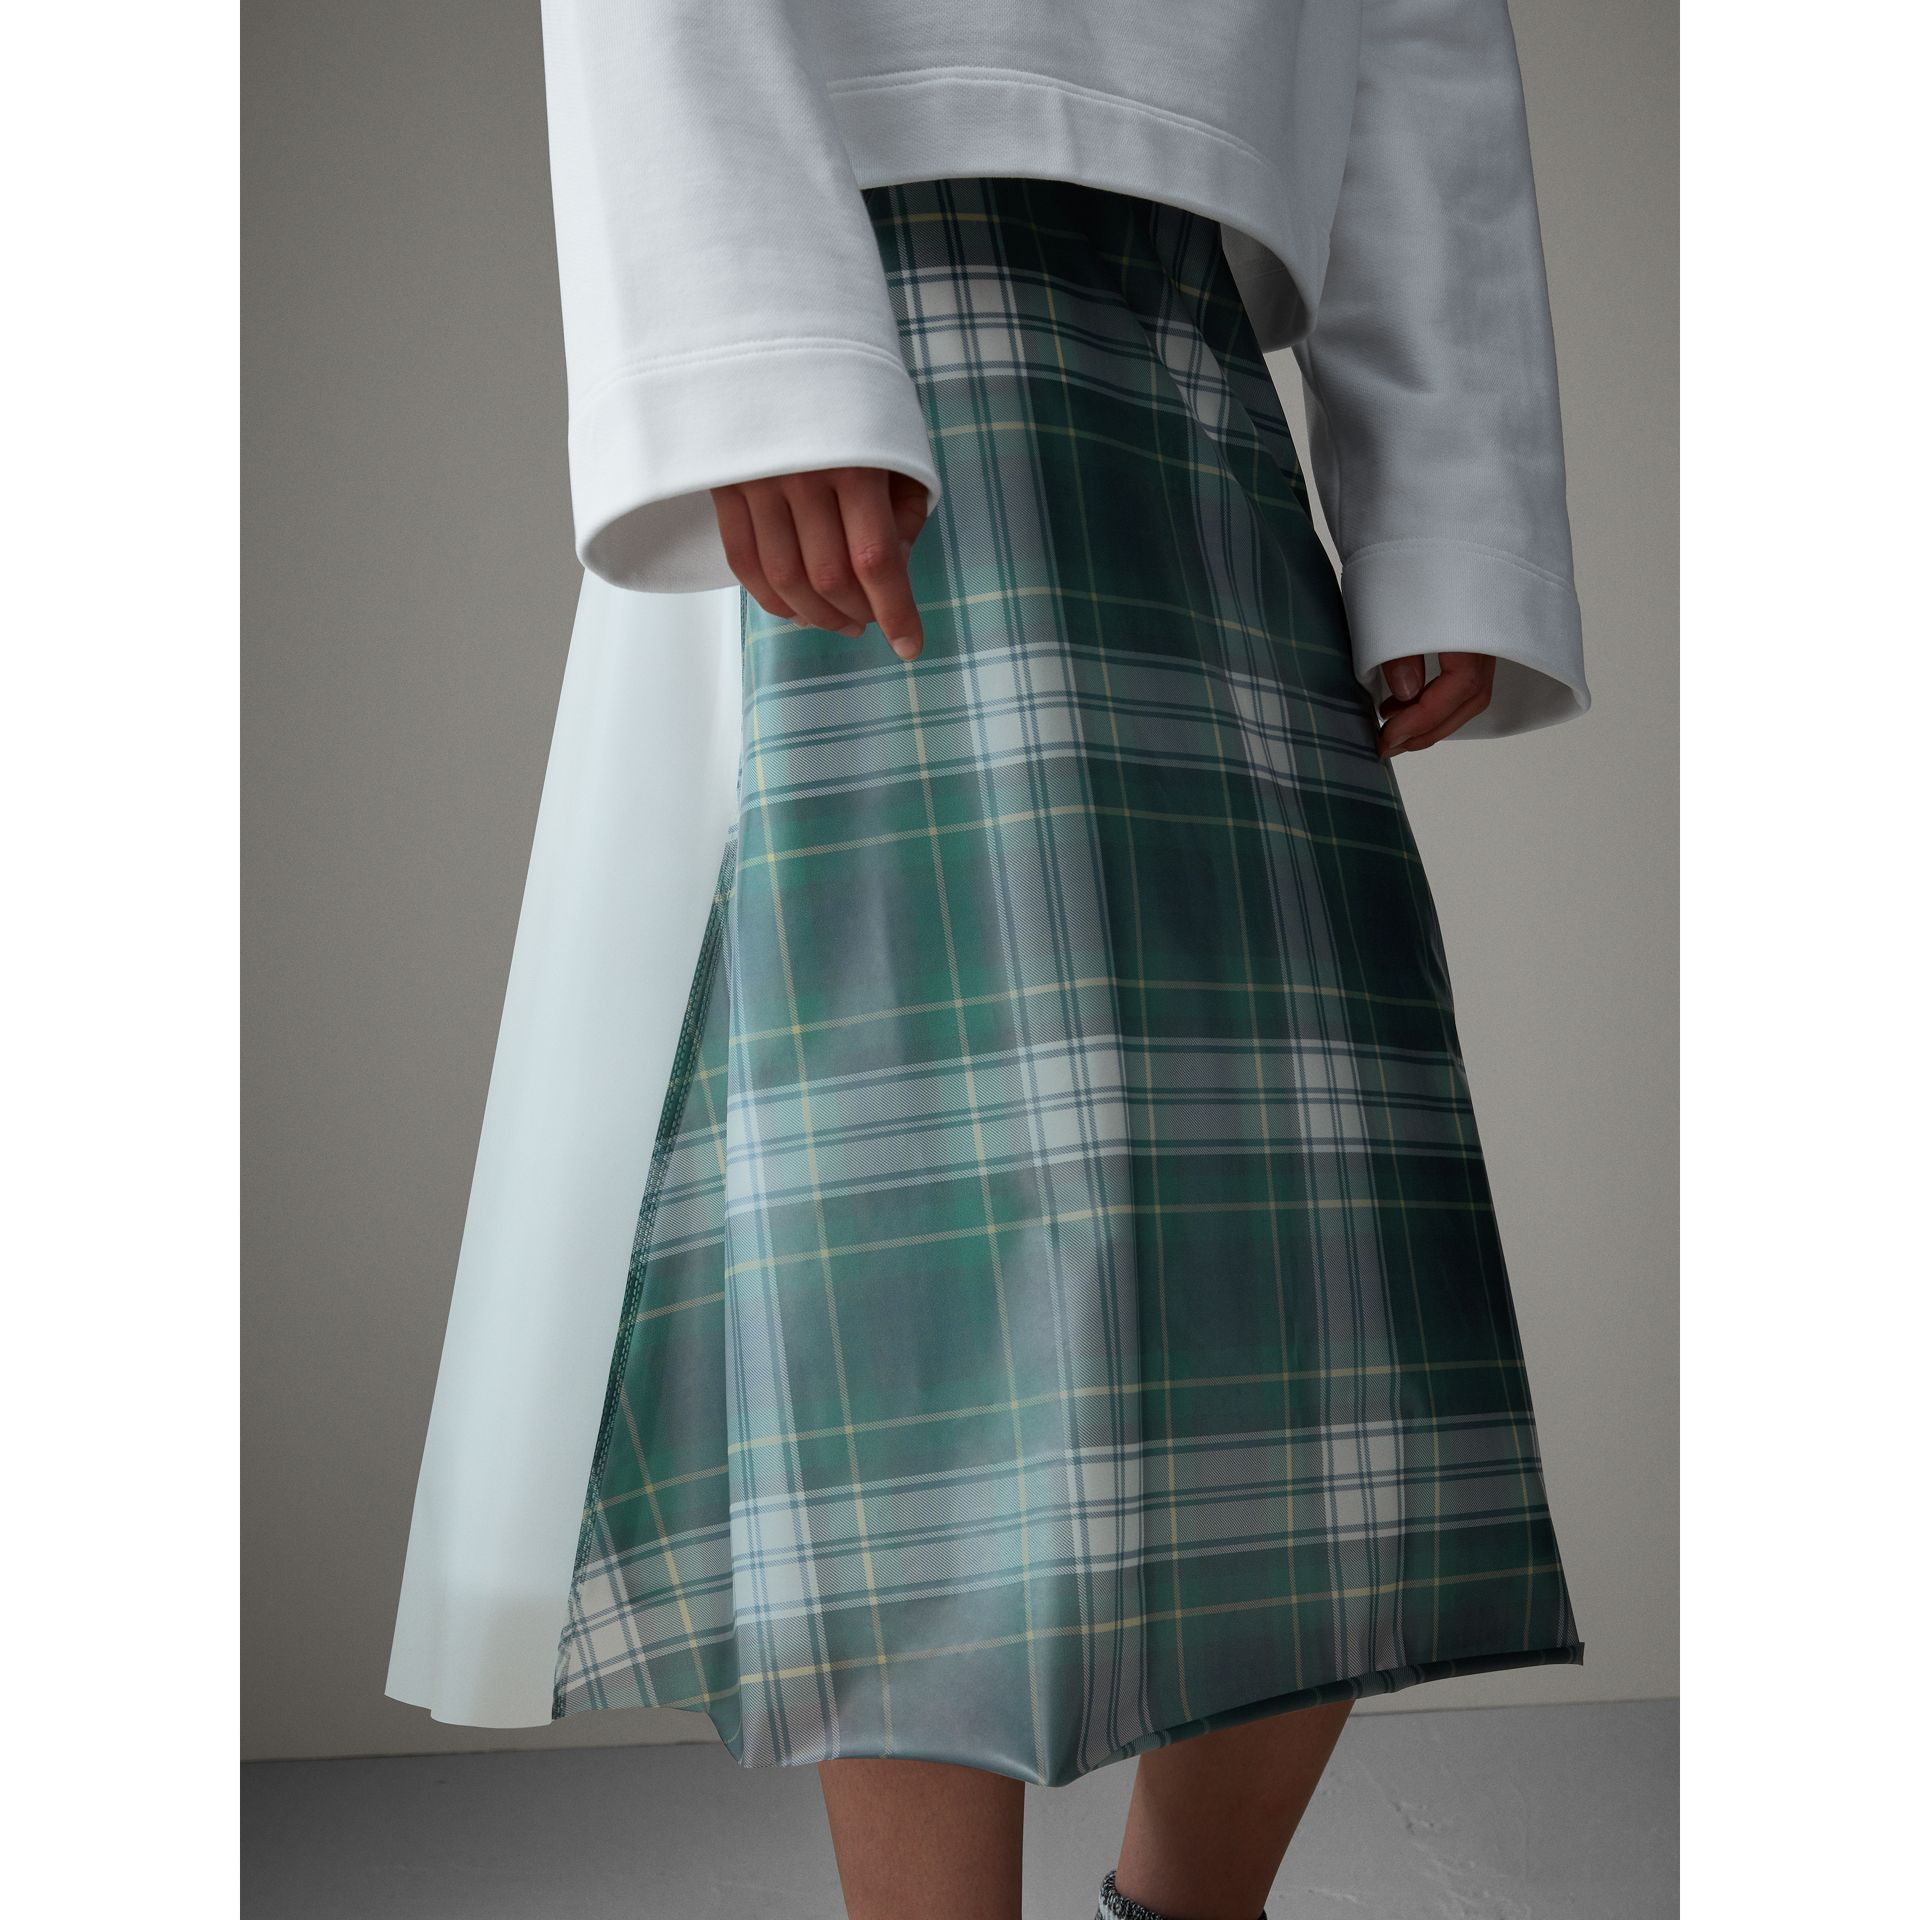 Silk-lined Tartan Plastic A-line Skirt in Green - Women | Burberry - gallery image 1